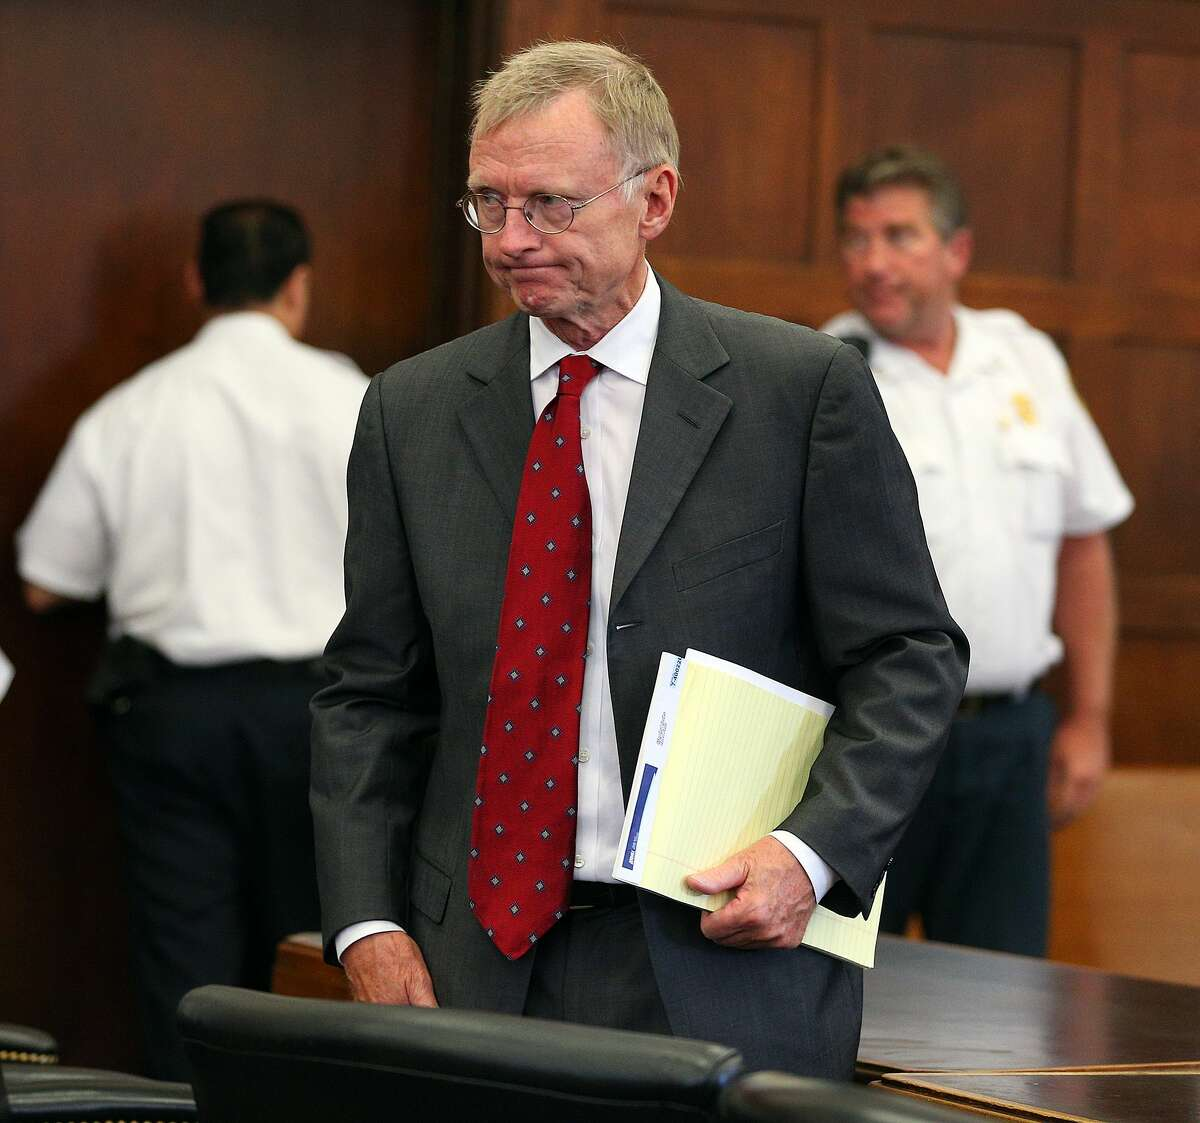 Aaron Hernandez's defense attorney Charles Rankin attends a hearing on Aug. 4 in Boston.